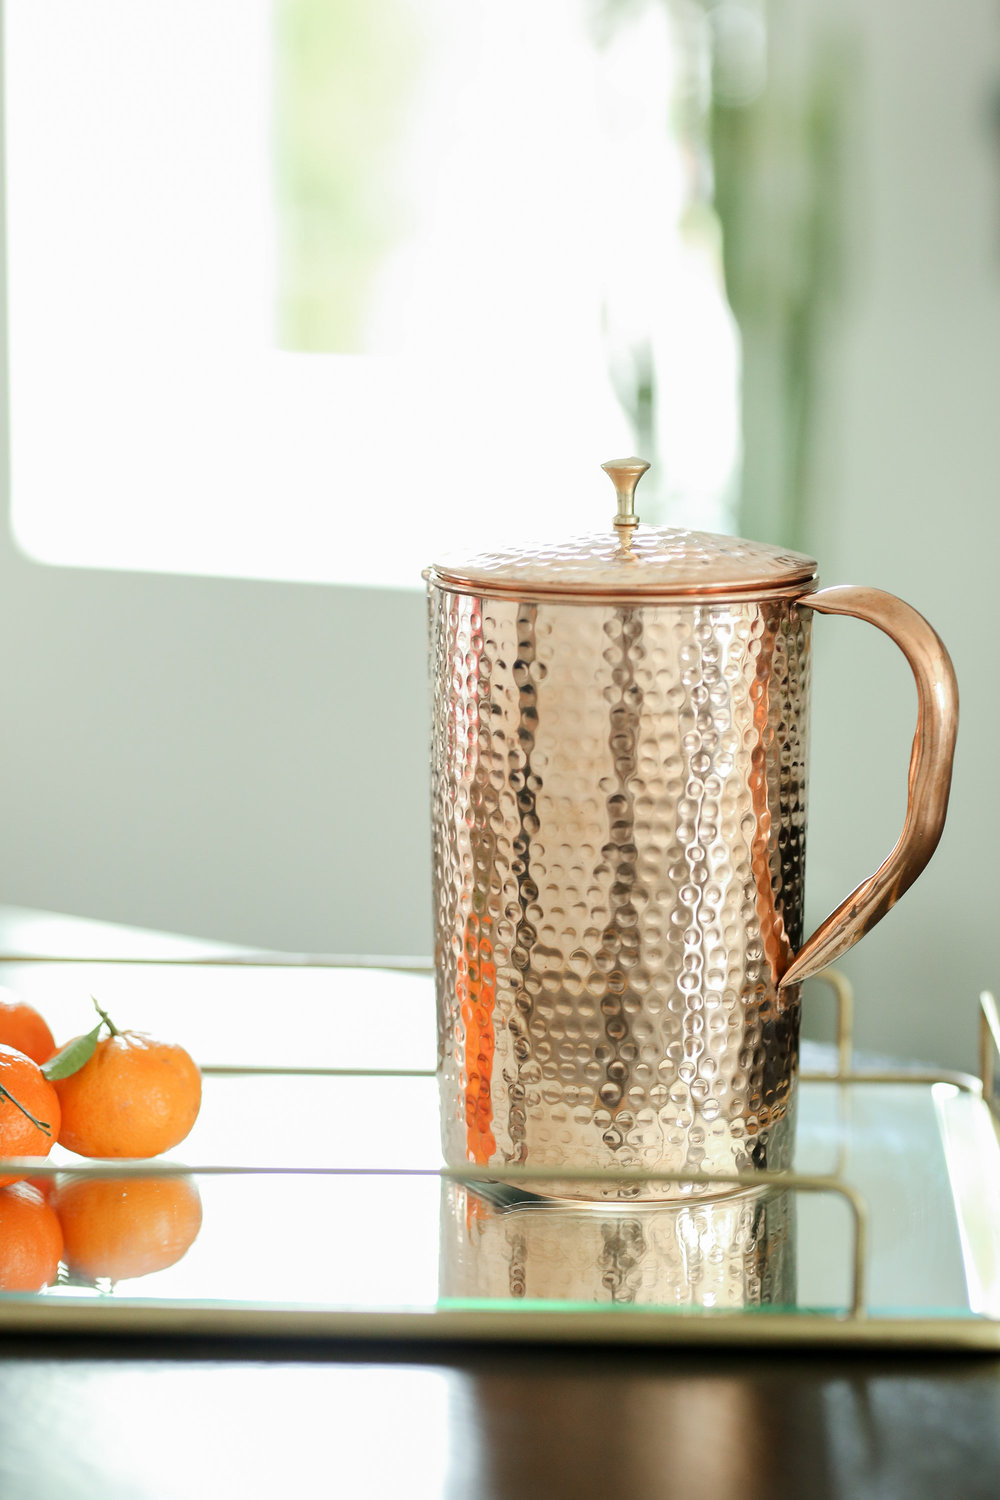 Shantiva-Copper-Water-Pitcher-Lauren-Schwaiger-Healthy-Living-Blog.jpg